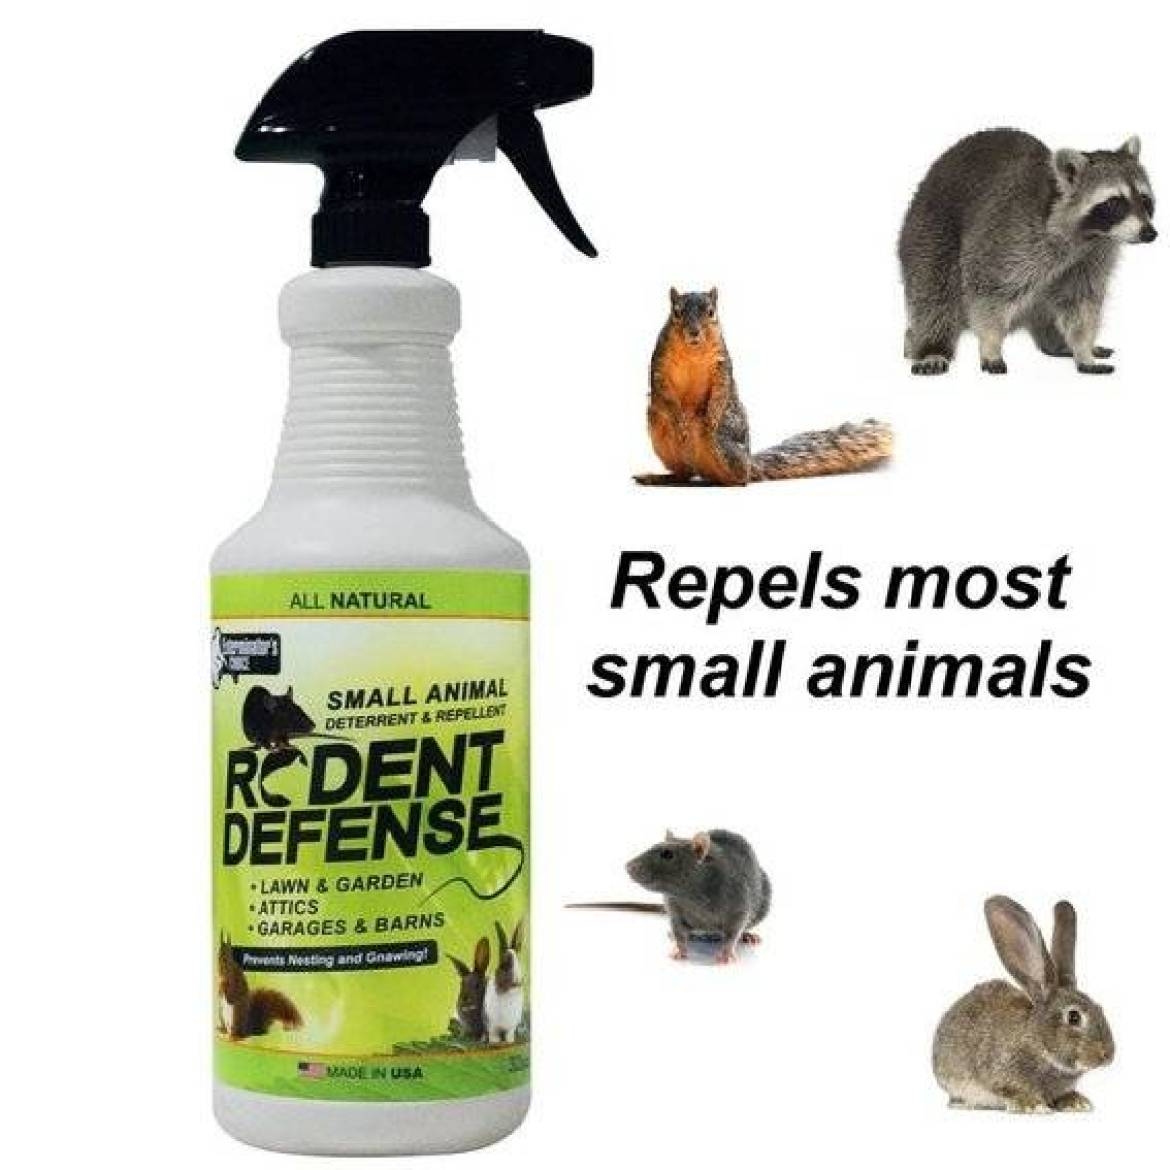 Rodent Defense Squirrel Repellent